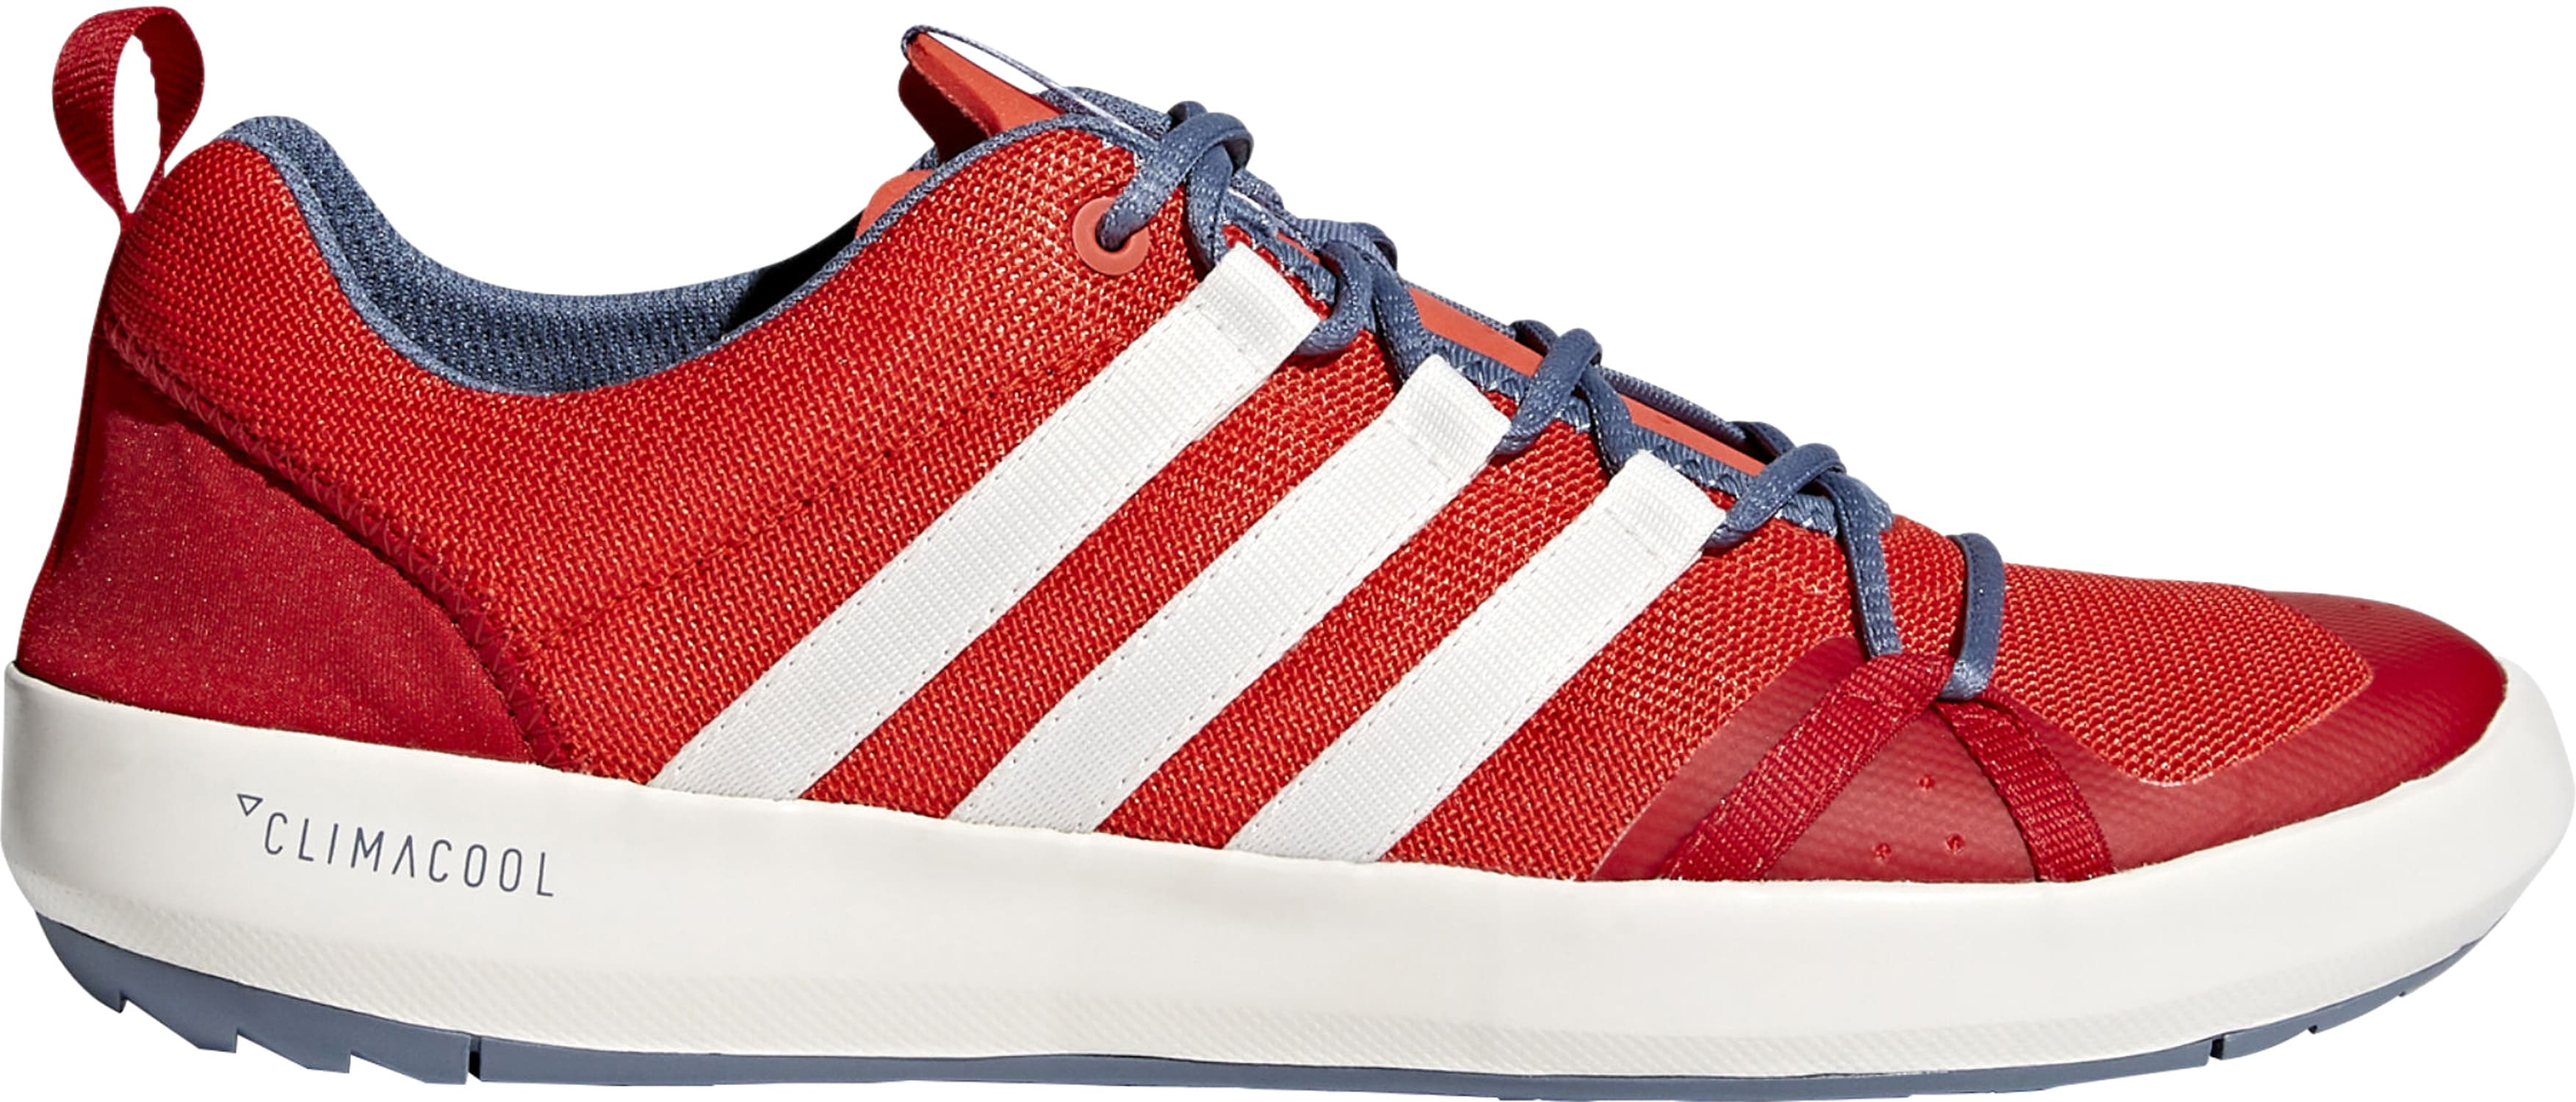 on sale 1238c ad53d ... store adidas terrex climacool boat water shoes thumbnail 1 cbbd9 9470f